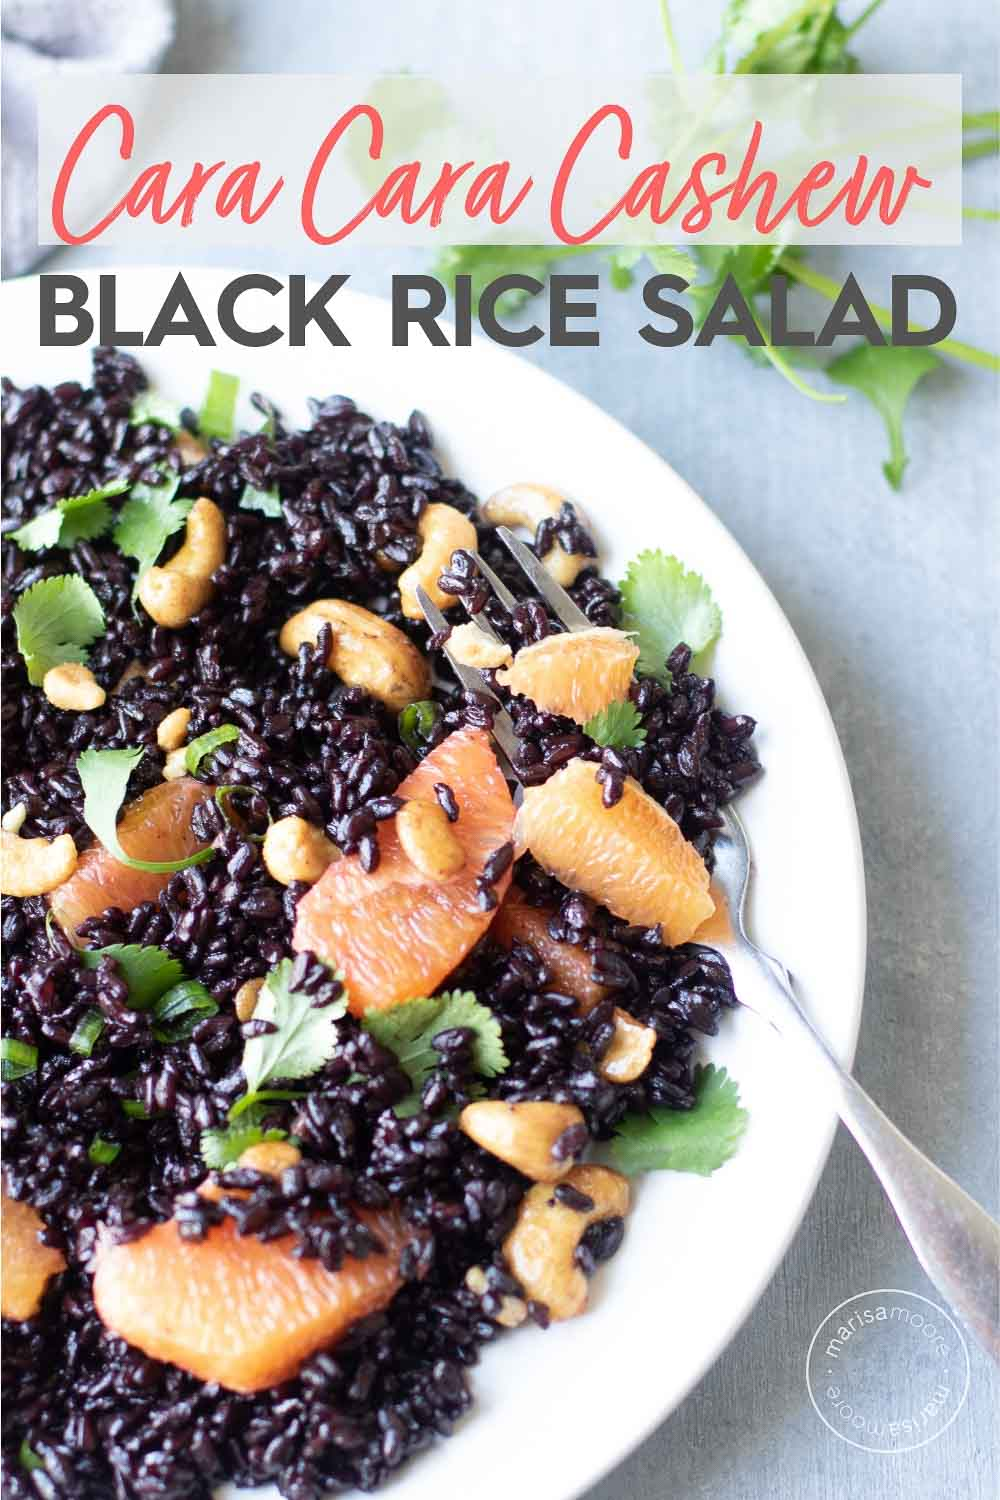 cara cara oranges and cashew black rice salad on a plate